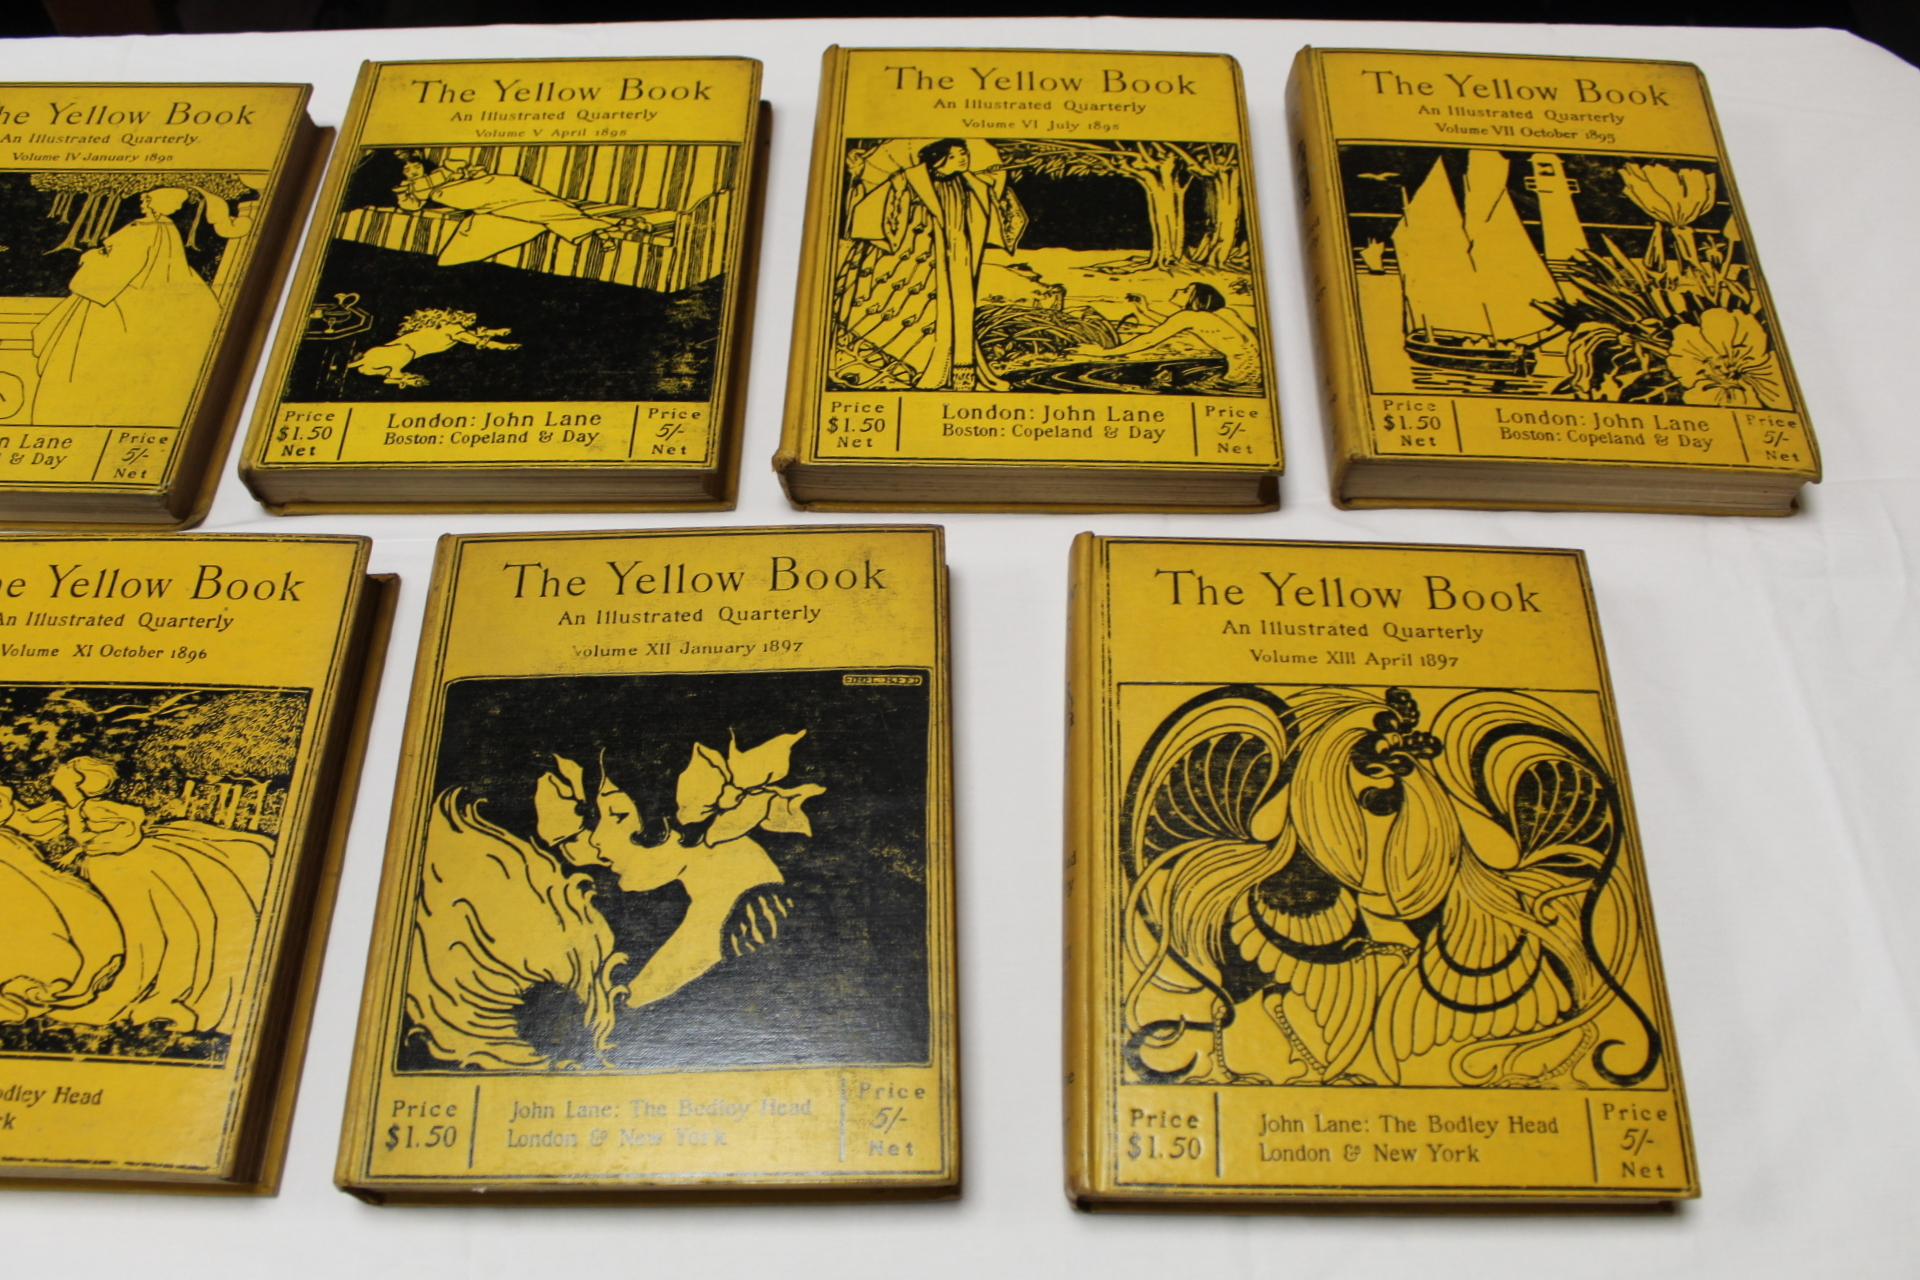 THE YELLOW BOOK.An Illustrated Quarterly. A set of 13 vols., many fine illus. Small quarto. - Image 10 of 45